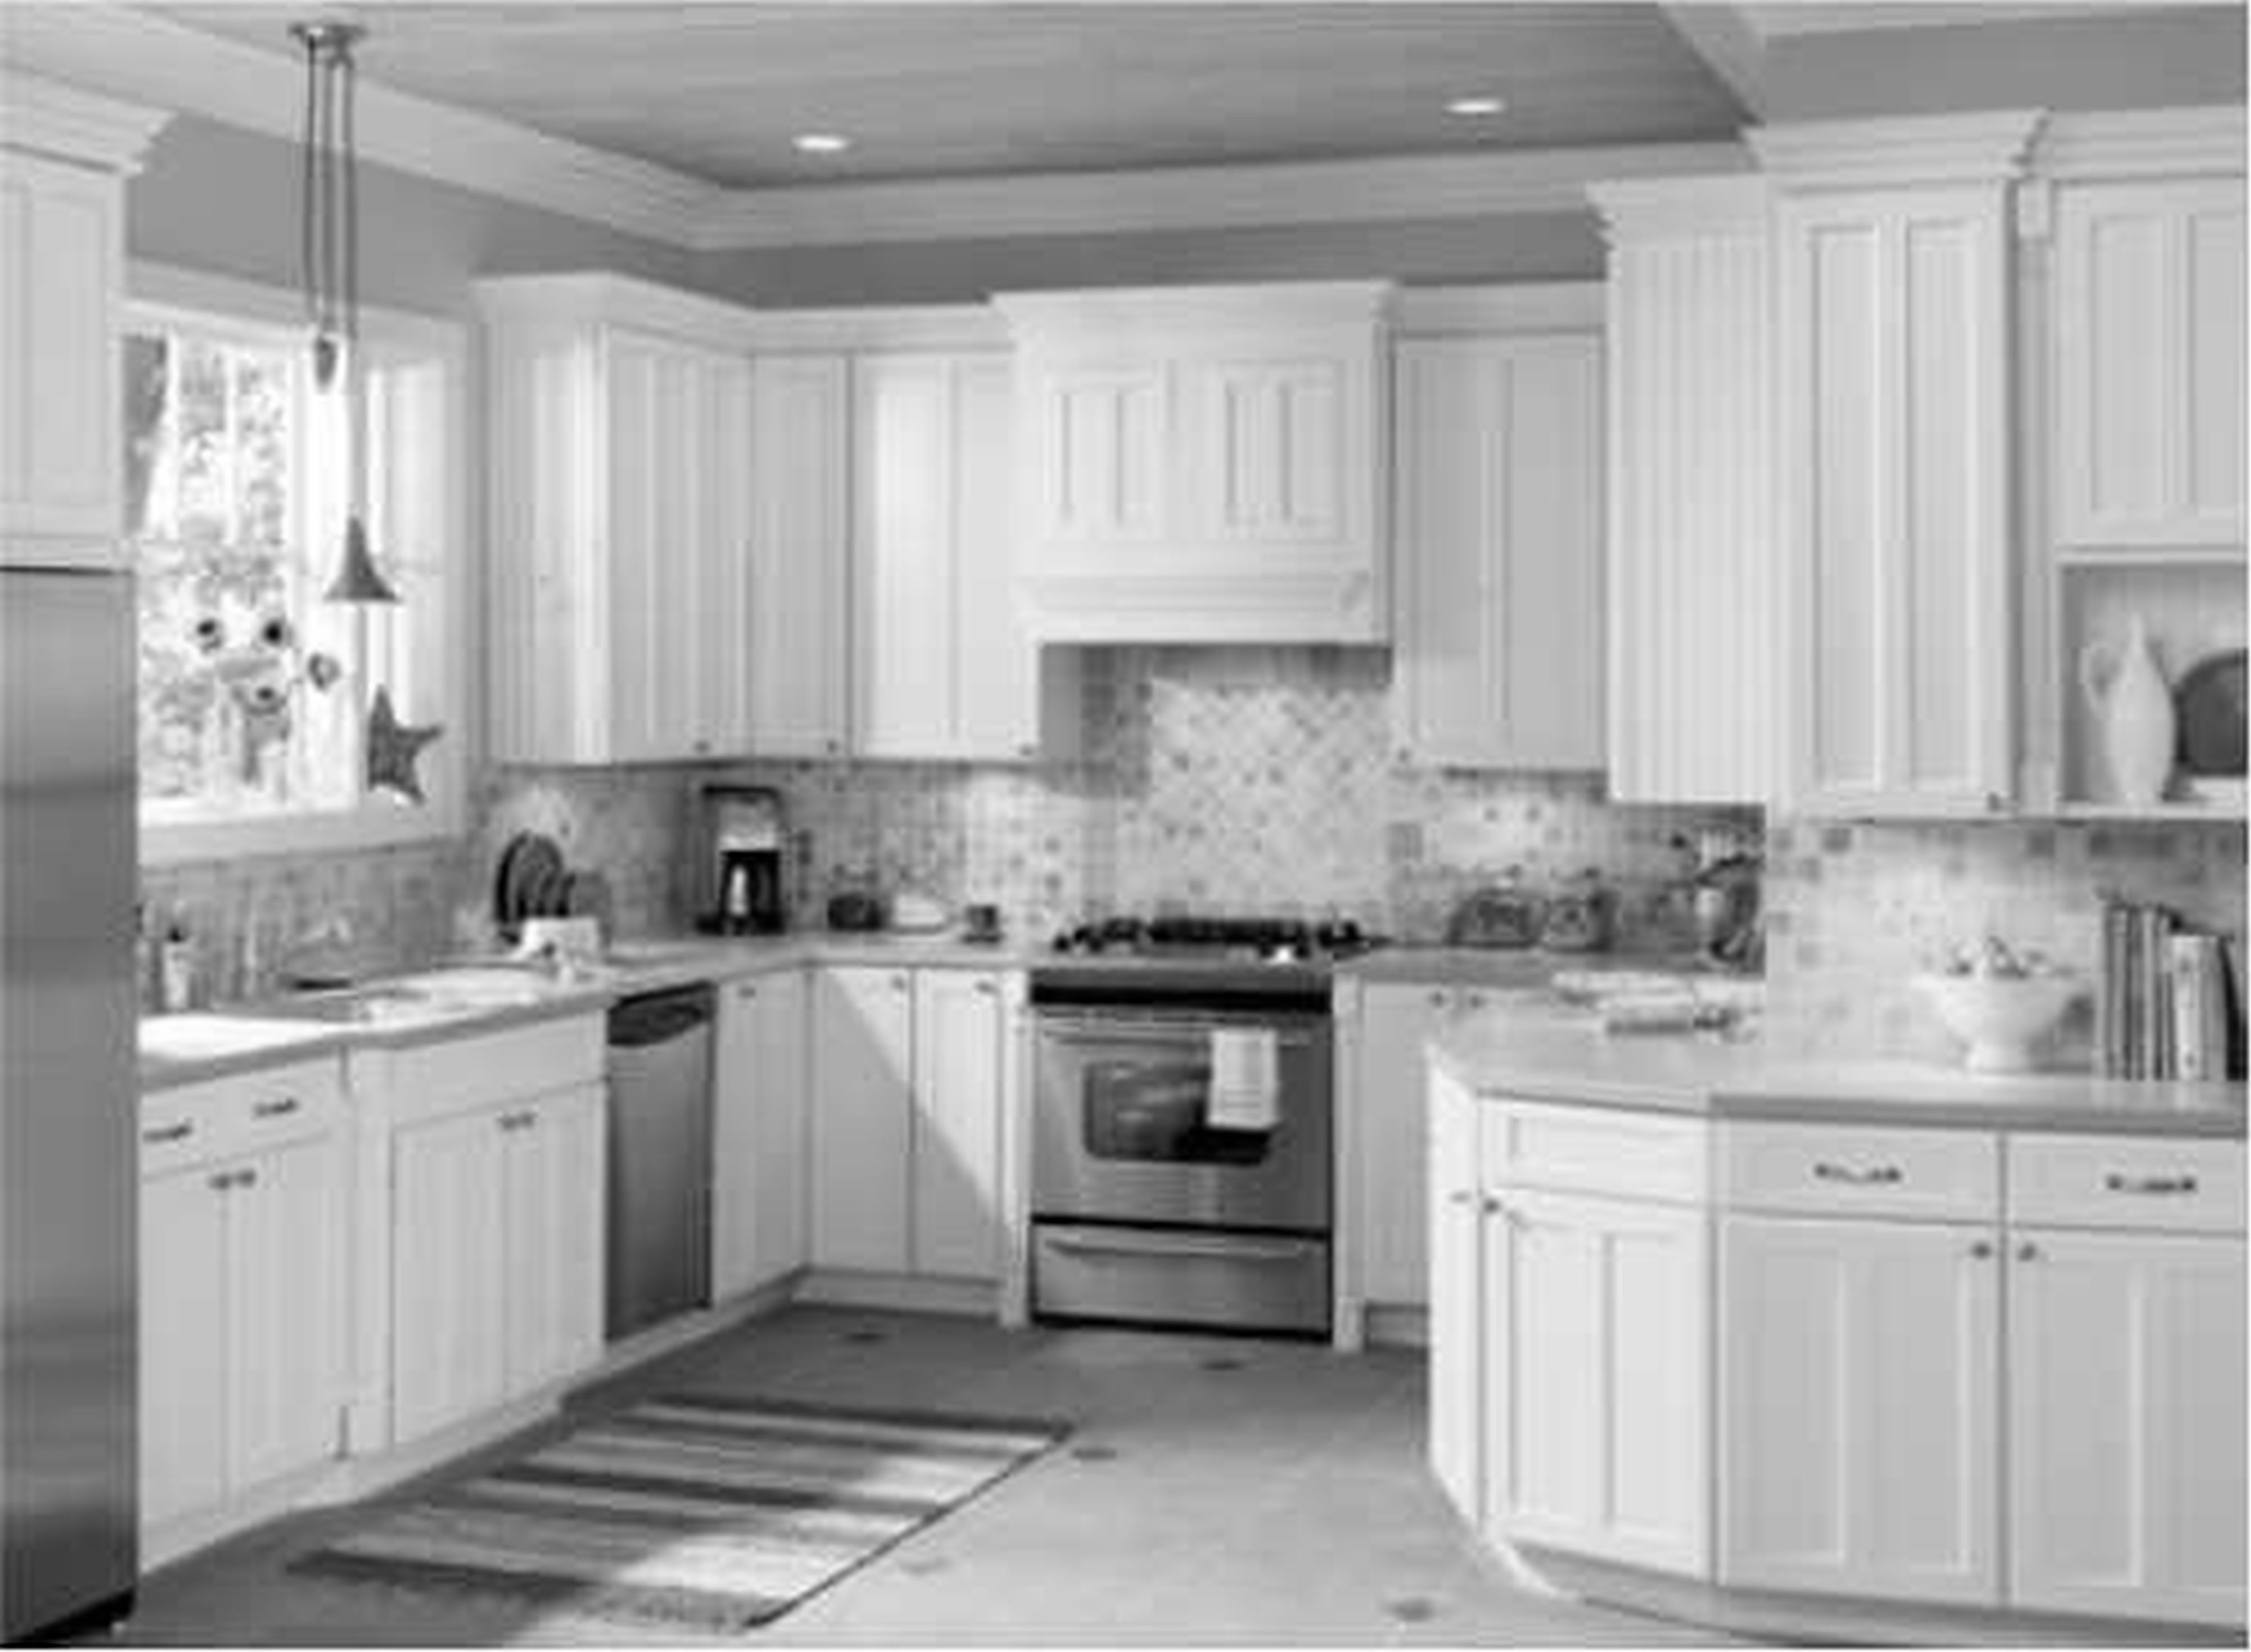 kitchen-remodeling-grey-and-white-kithen - Cidar Construction - Home ...